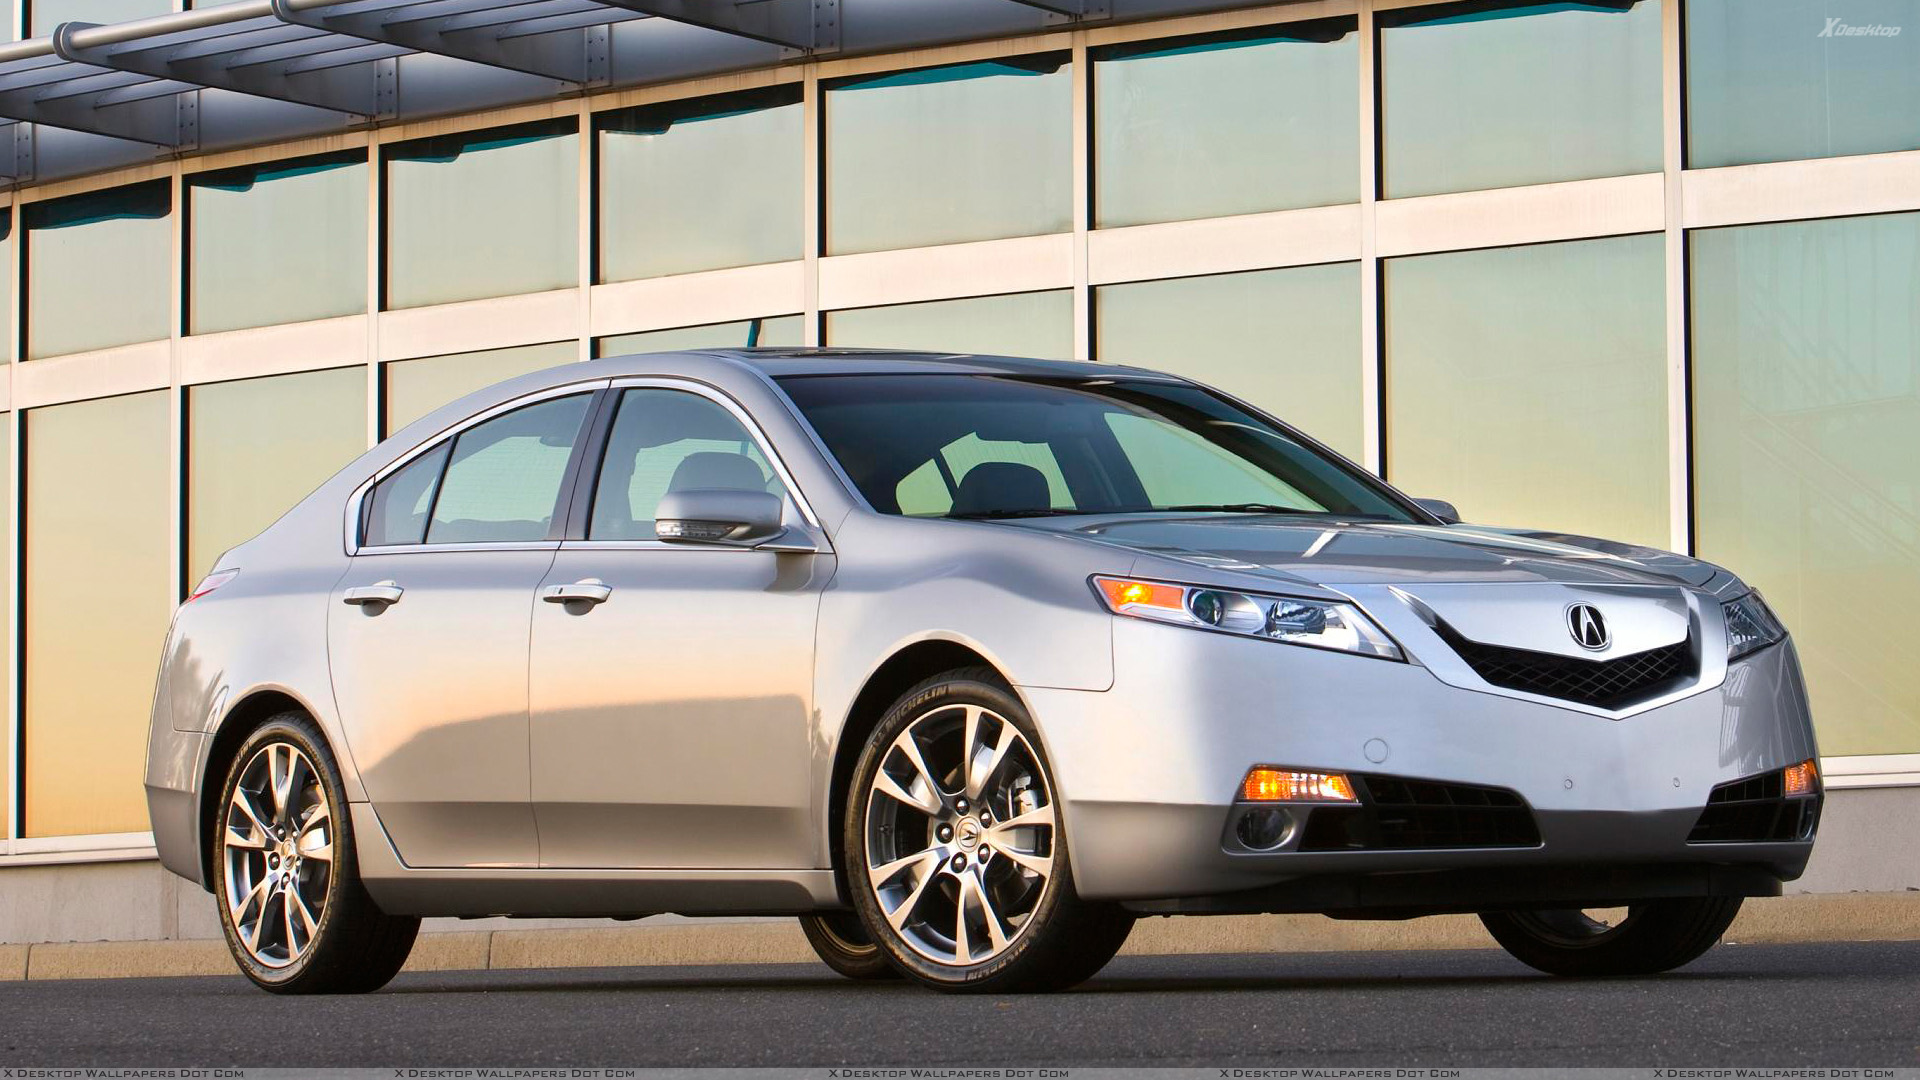 2009 acura tl sh awd side front pose in silver wallpaper